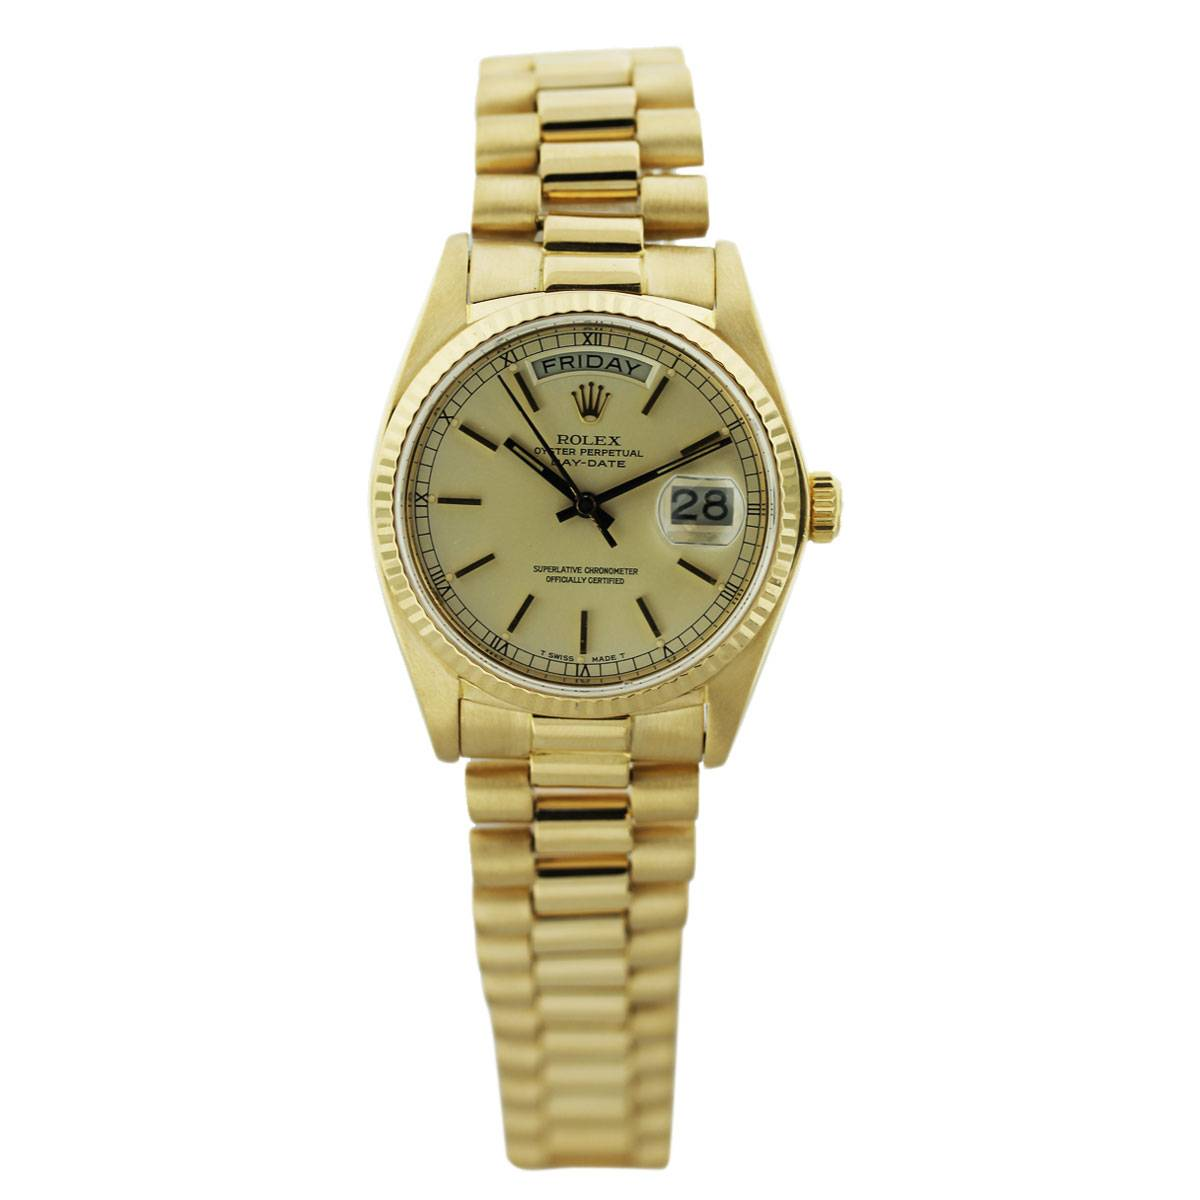 18k Yellow Gold Rolex 18038 Watch, pre owned rolex day date, rolex presidential